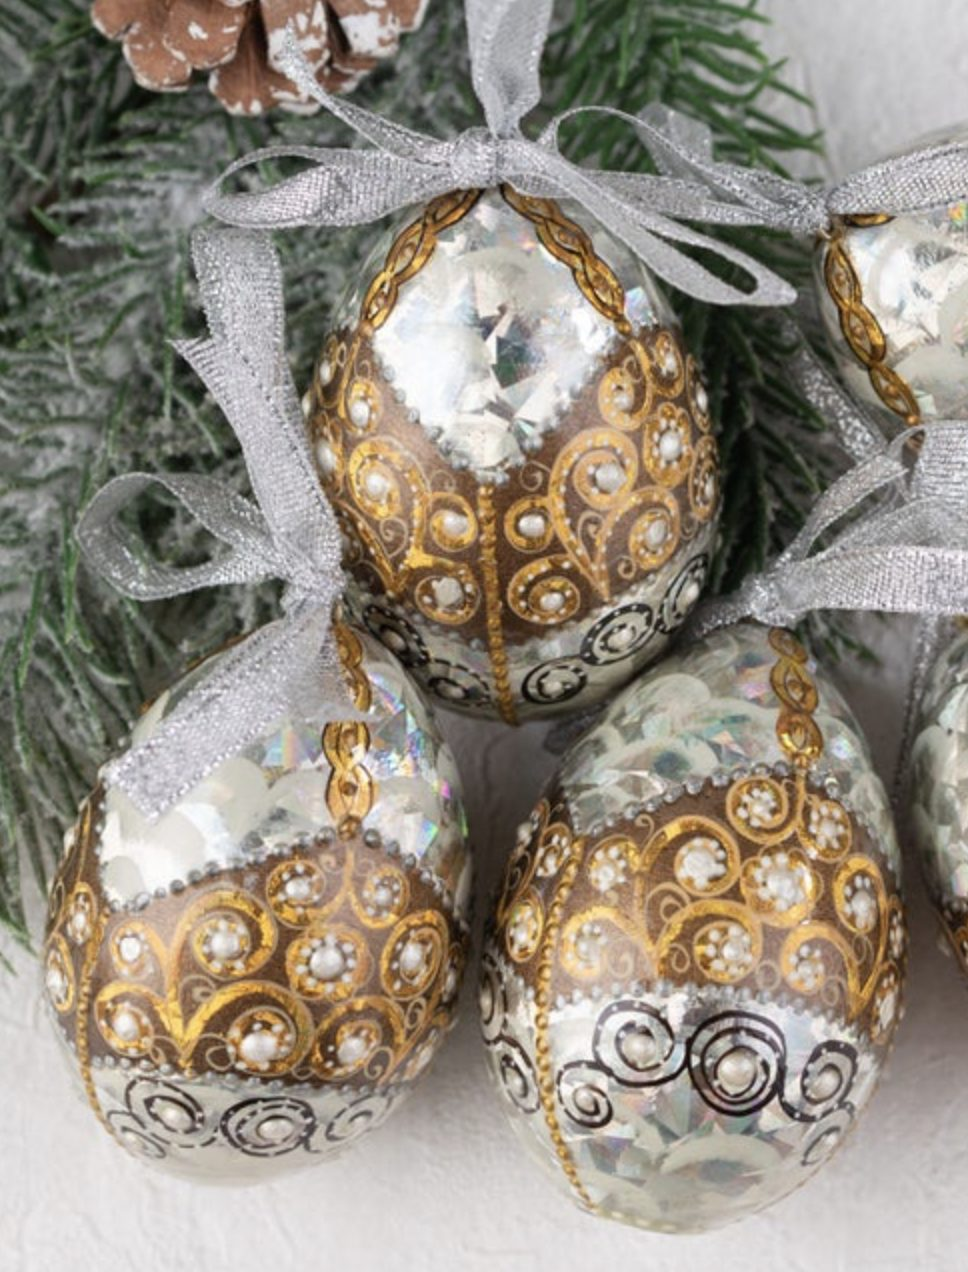 Brown, gold and silver Easter eggs